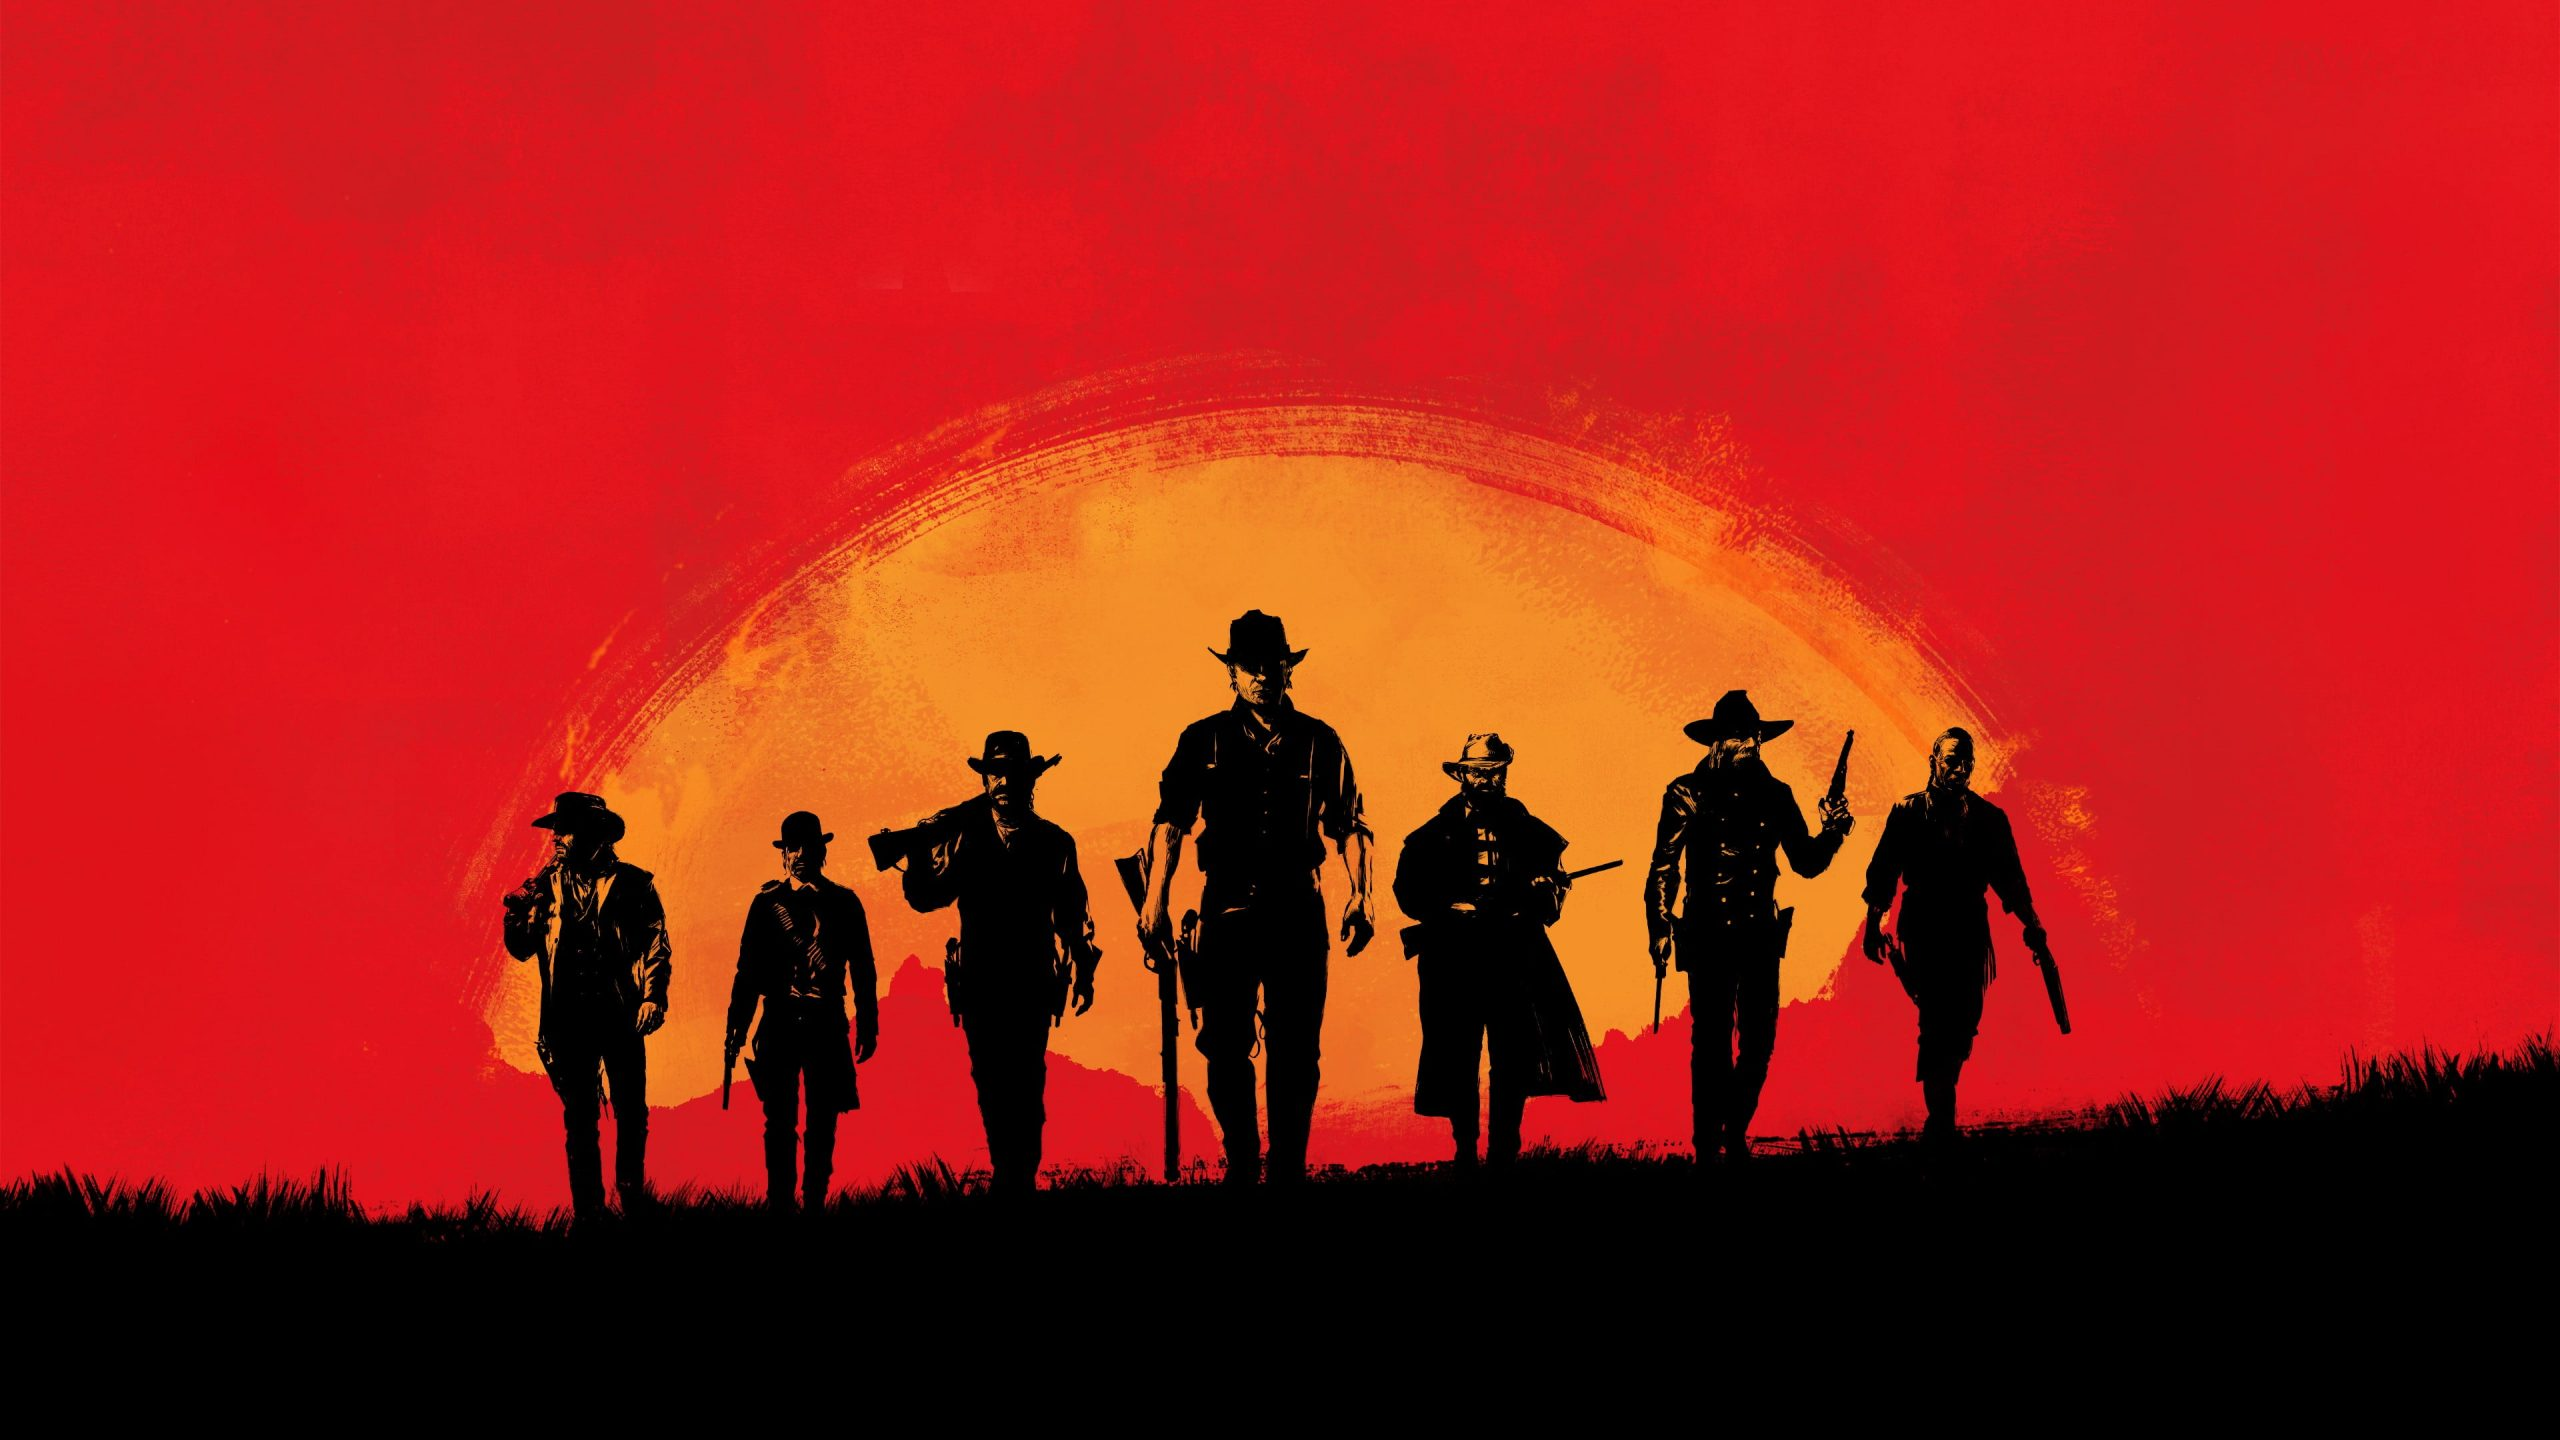 Game Wallpaper Yellow Red And Black Group Of Men Digital Wallpaper Red Dead Redemption Wallpaper For You The Best Wallpaper For Desktop Mobile